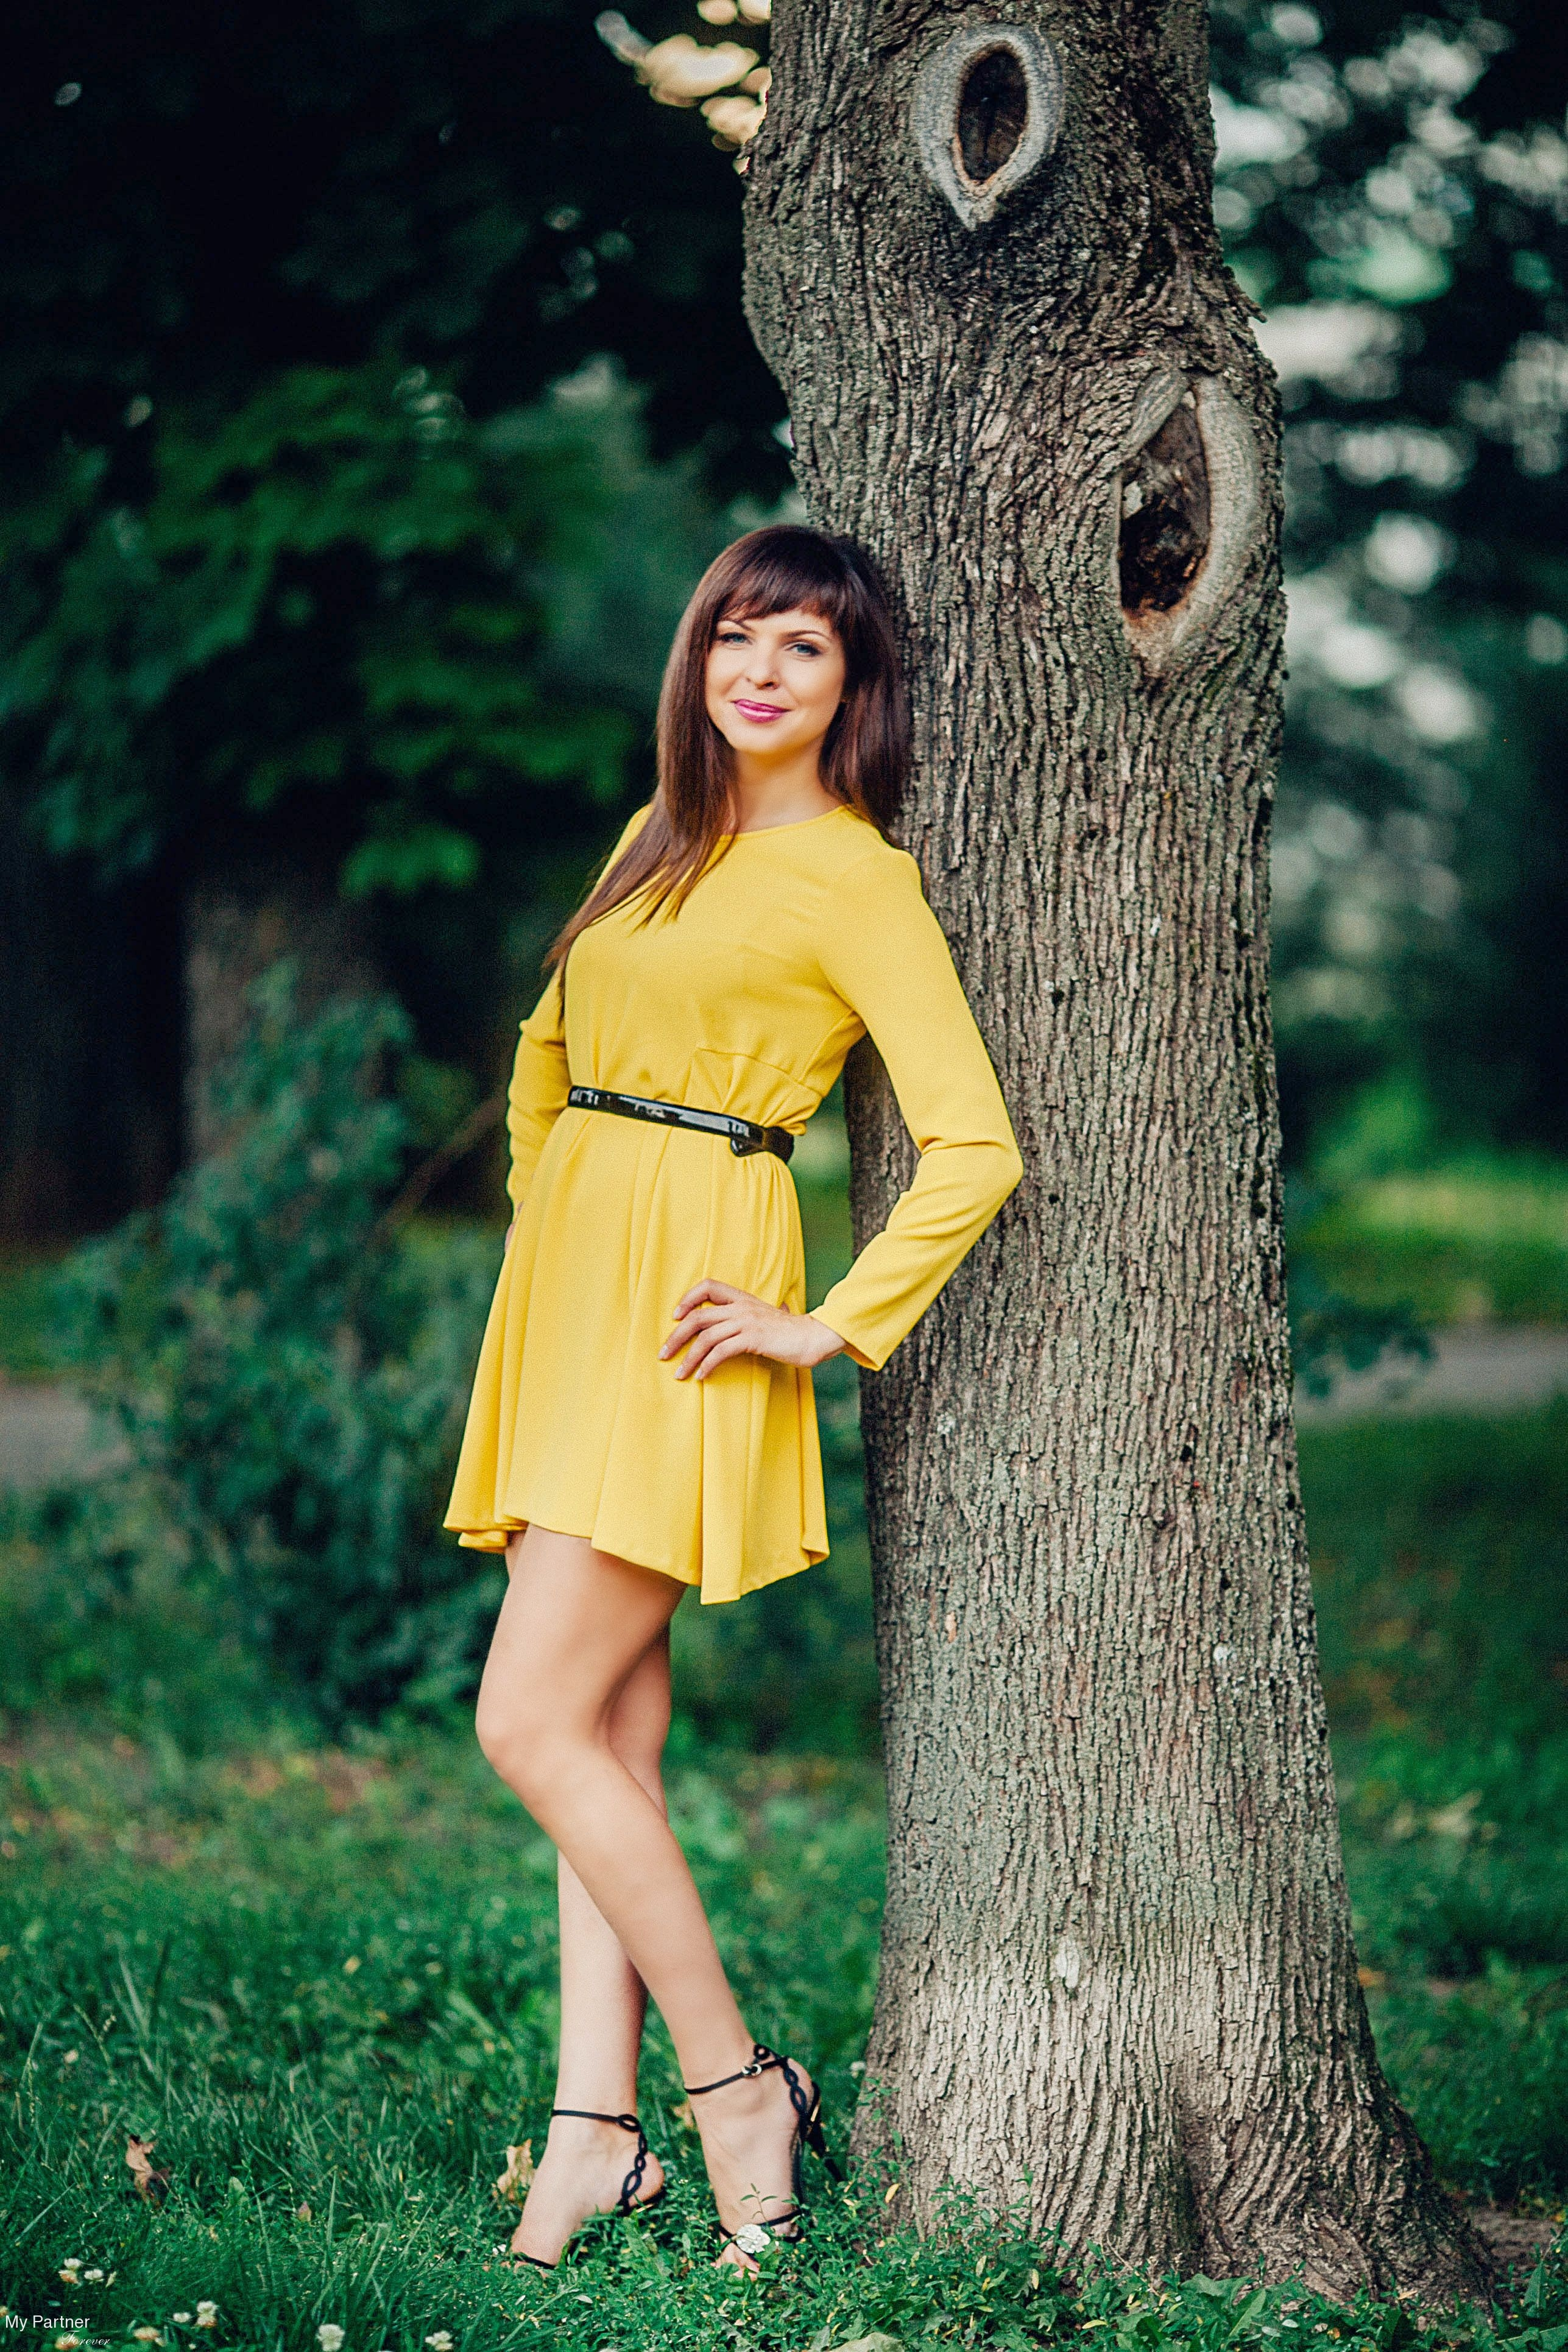 how to meet a guy online How to meet single men over 50 making it easy for anyone to go online or attend a singles meet-up to try and find of meeting the kind of guy you've been.